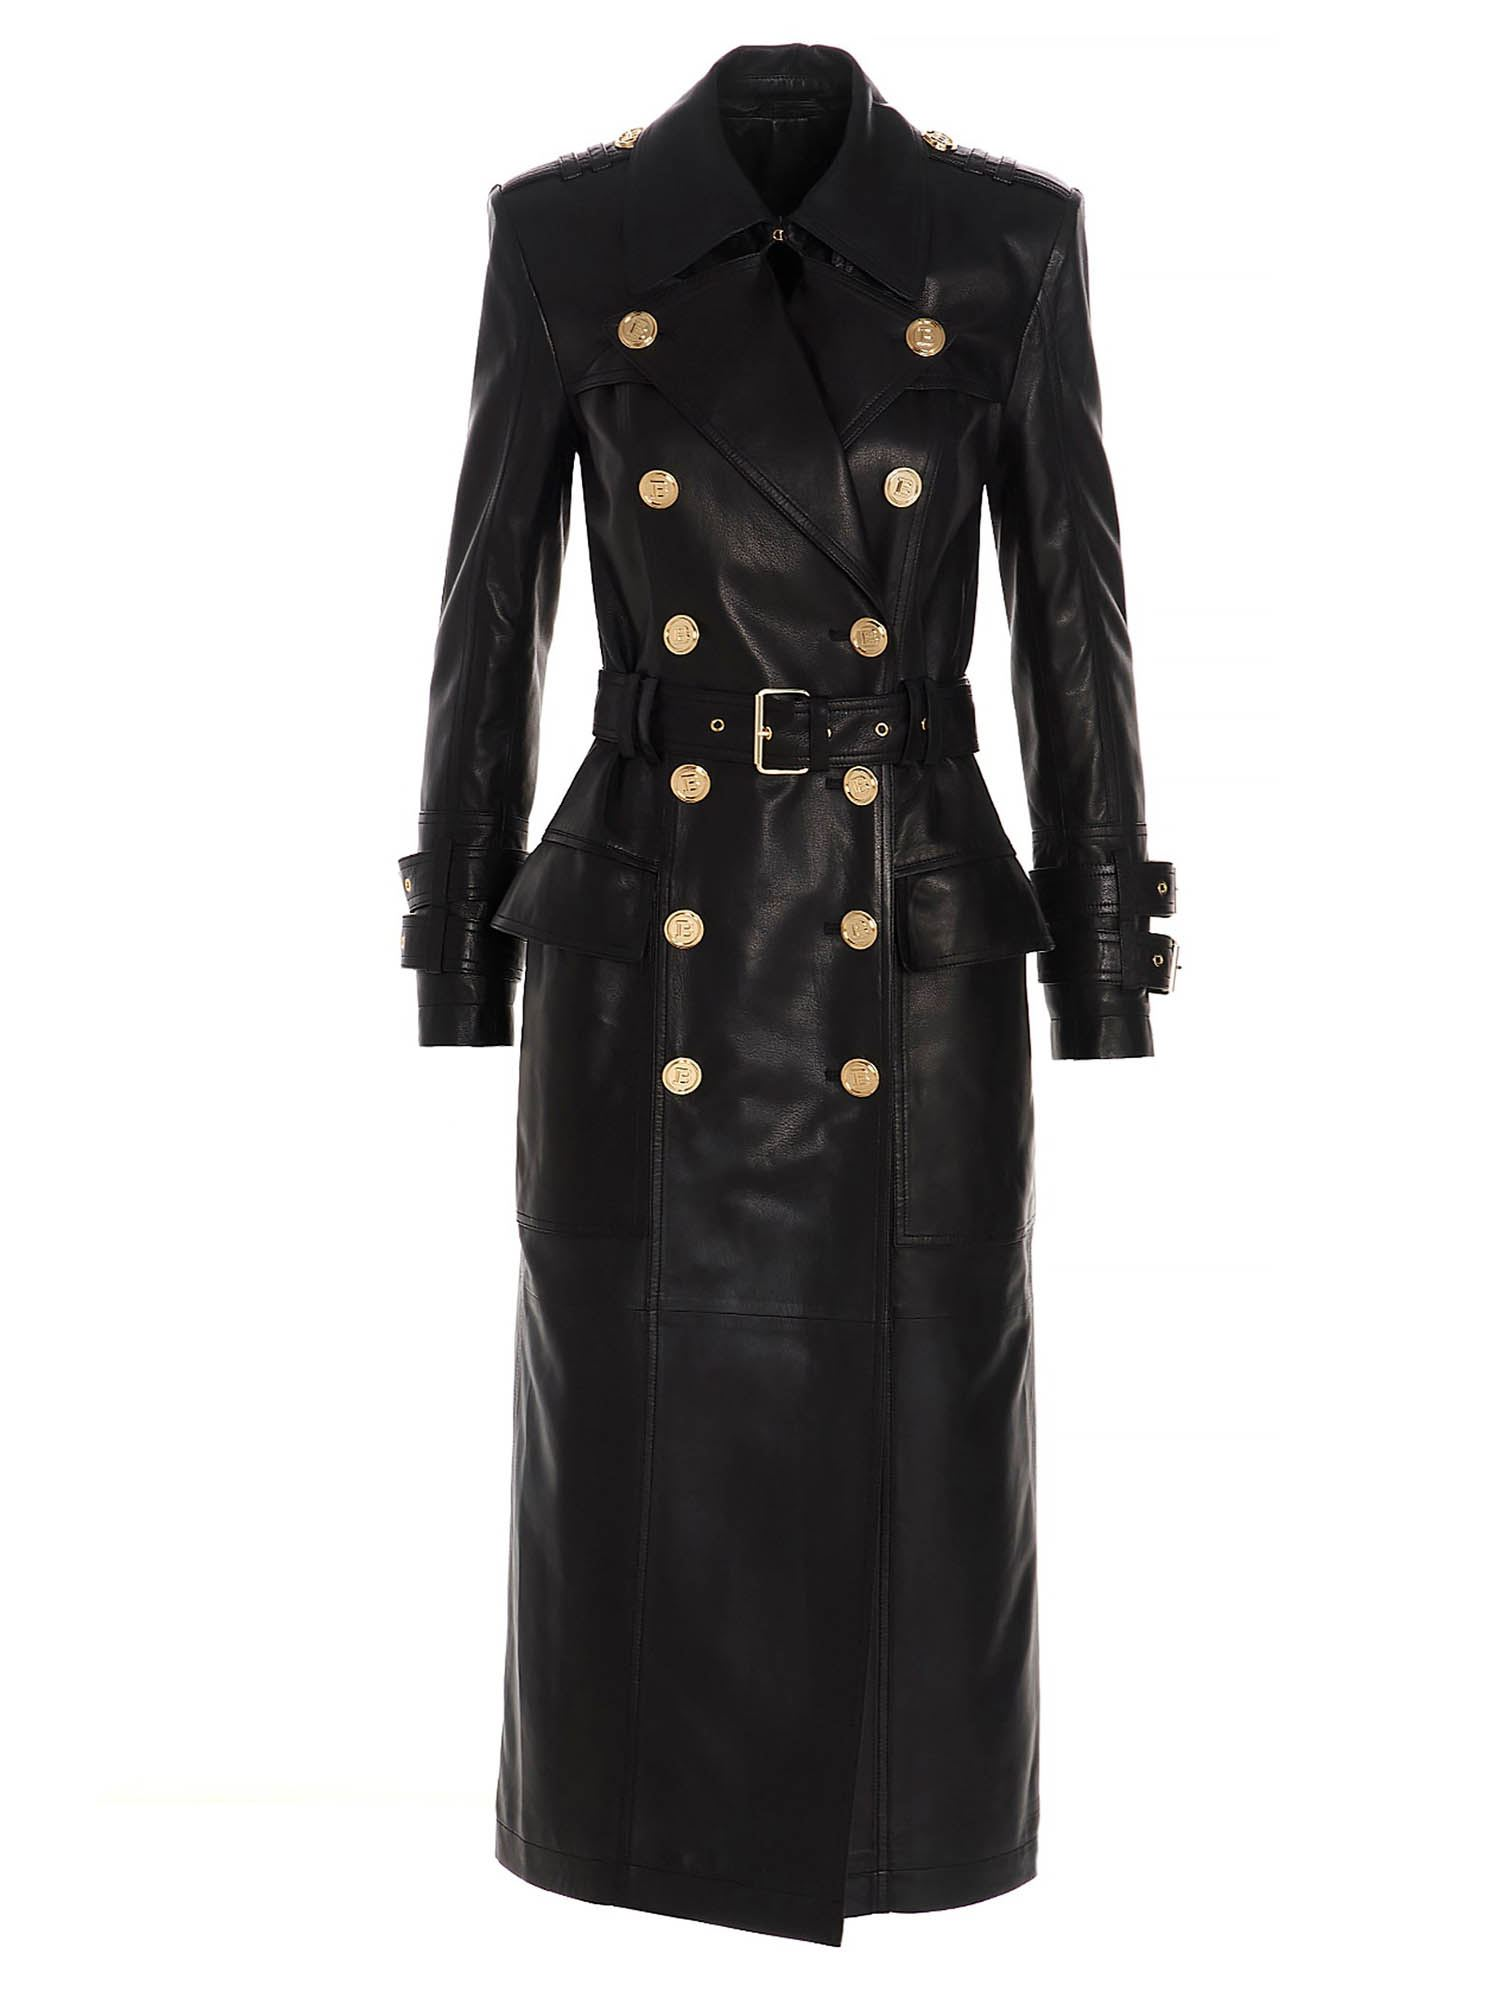 Balmain LEATHER TRENCH COAT IN BLACK